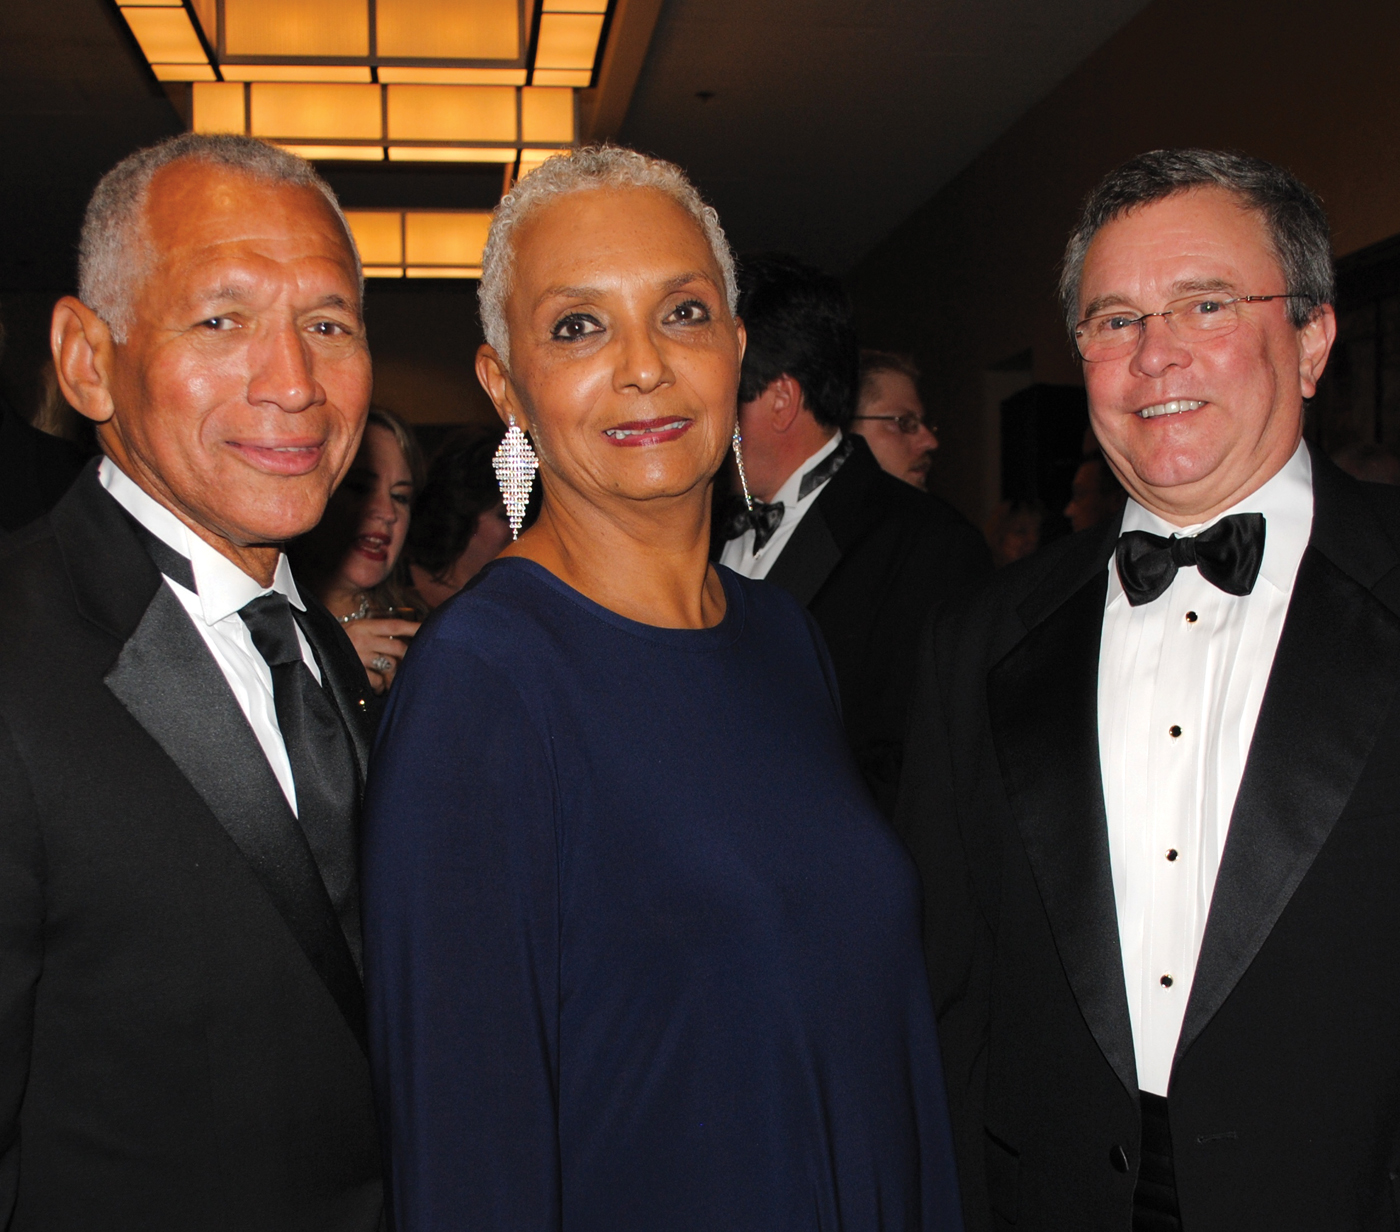 NASA Administrator Charles Bolden and his wife, Jackie, left, visit with Dr. Jeffrey Davis, JSC human health director, as they await the start of the Rotary Space Gala.